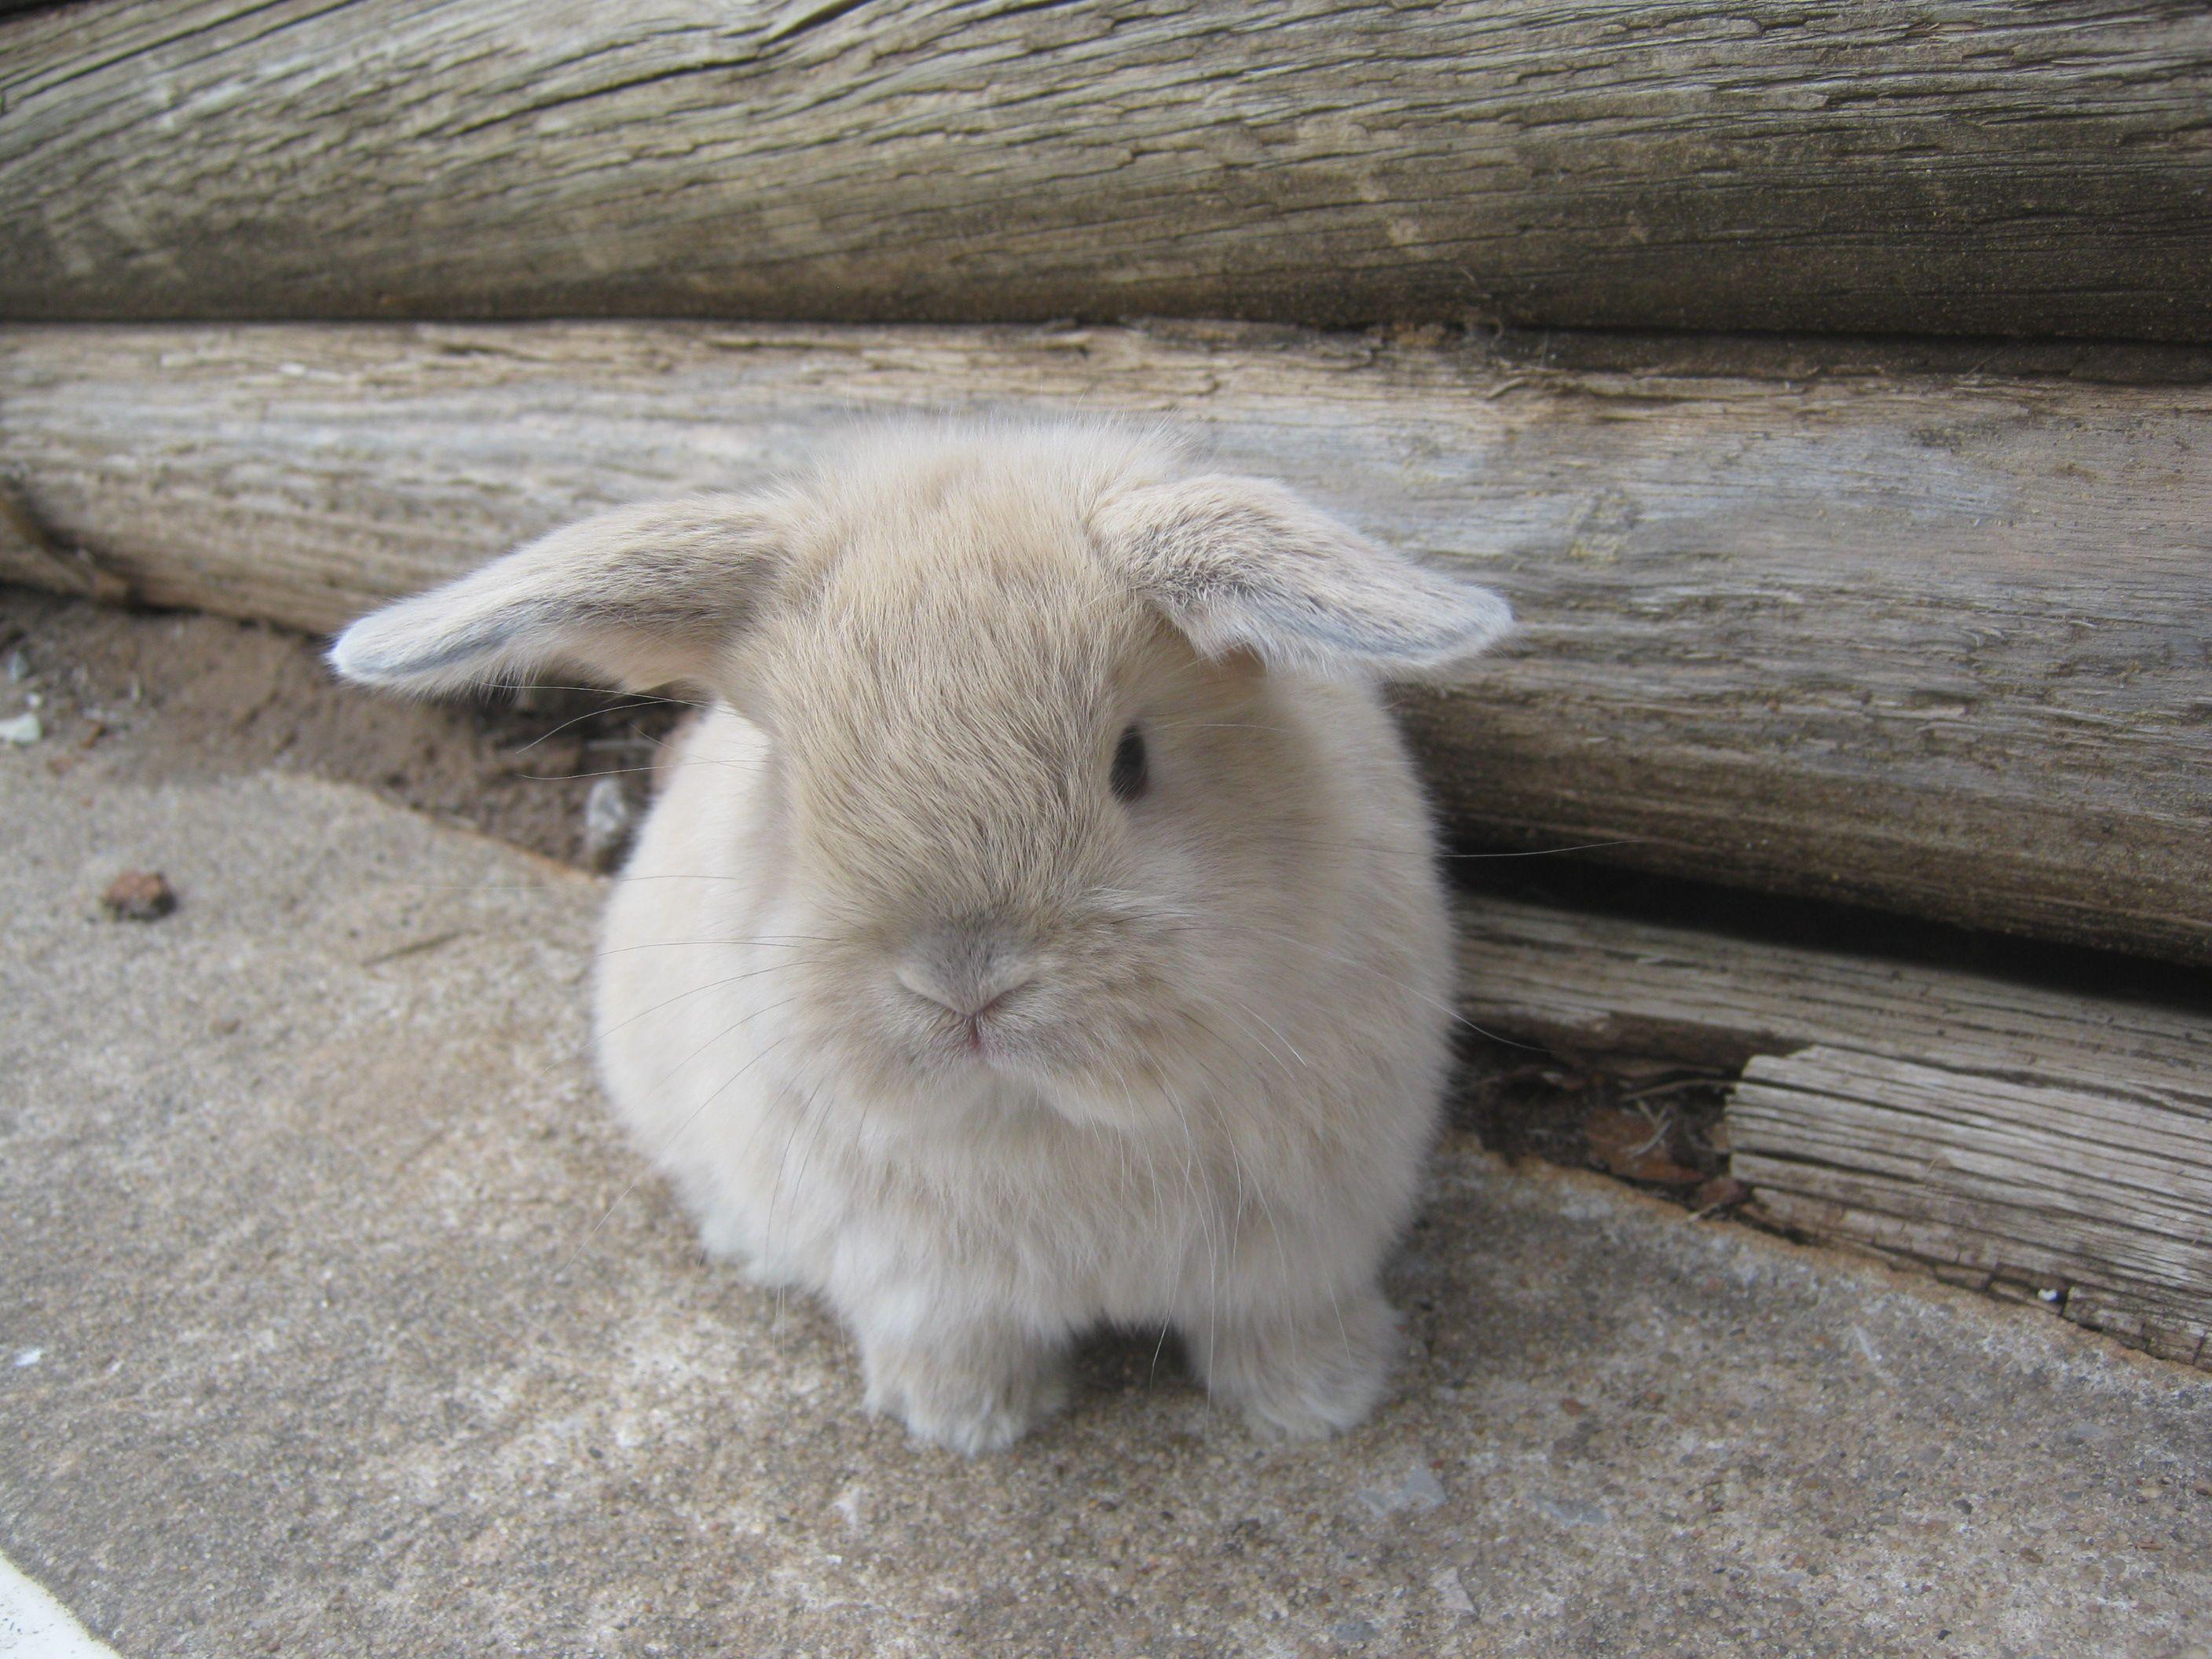 Cute Bunny Of The Day Is This Baby Holland Lop